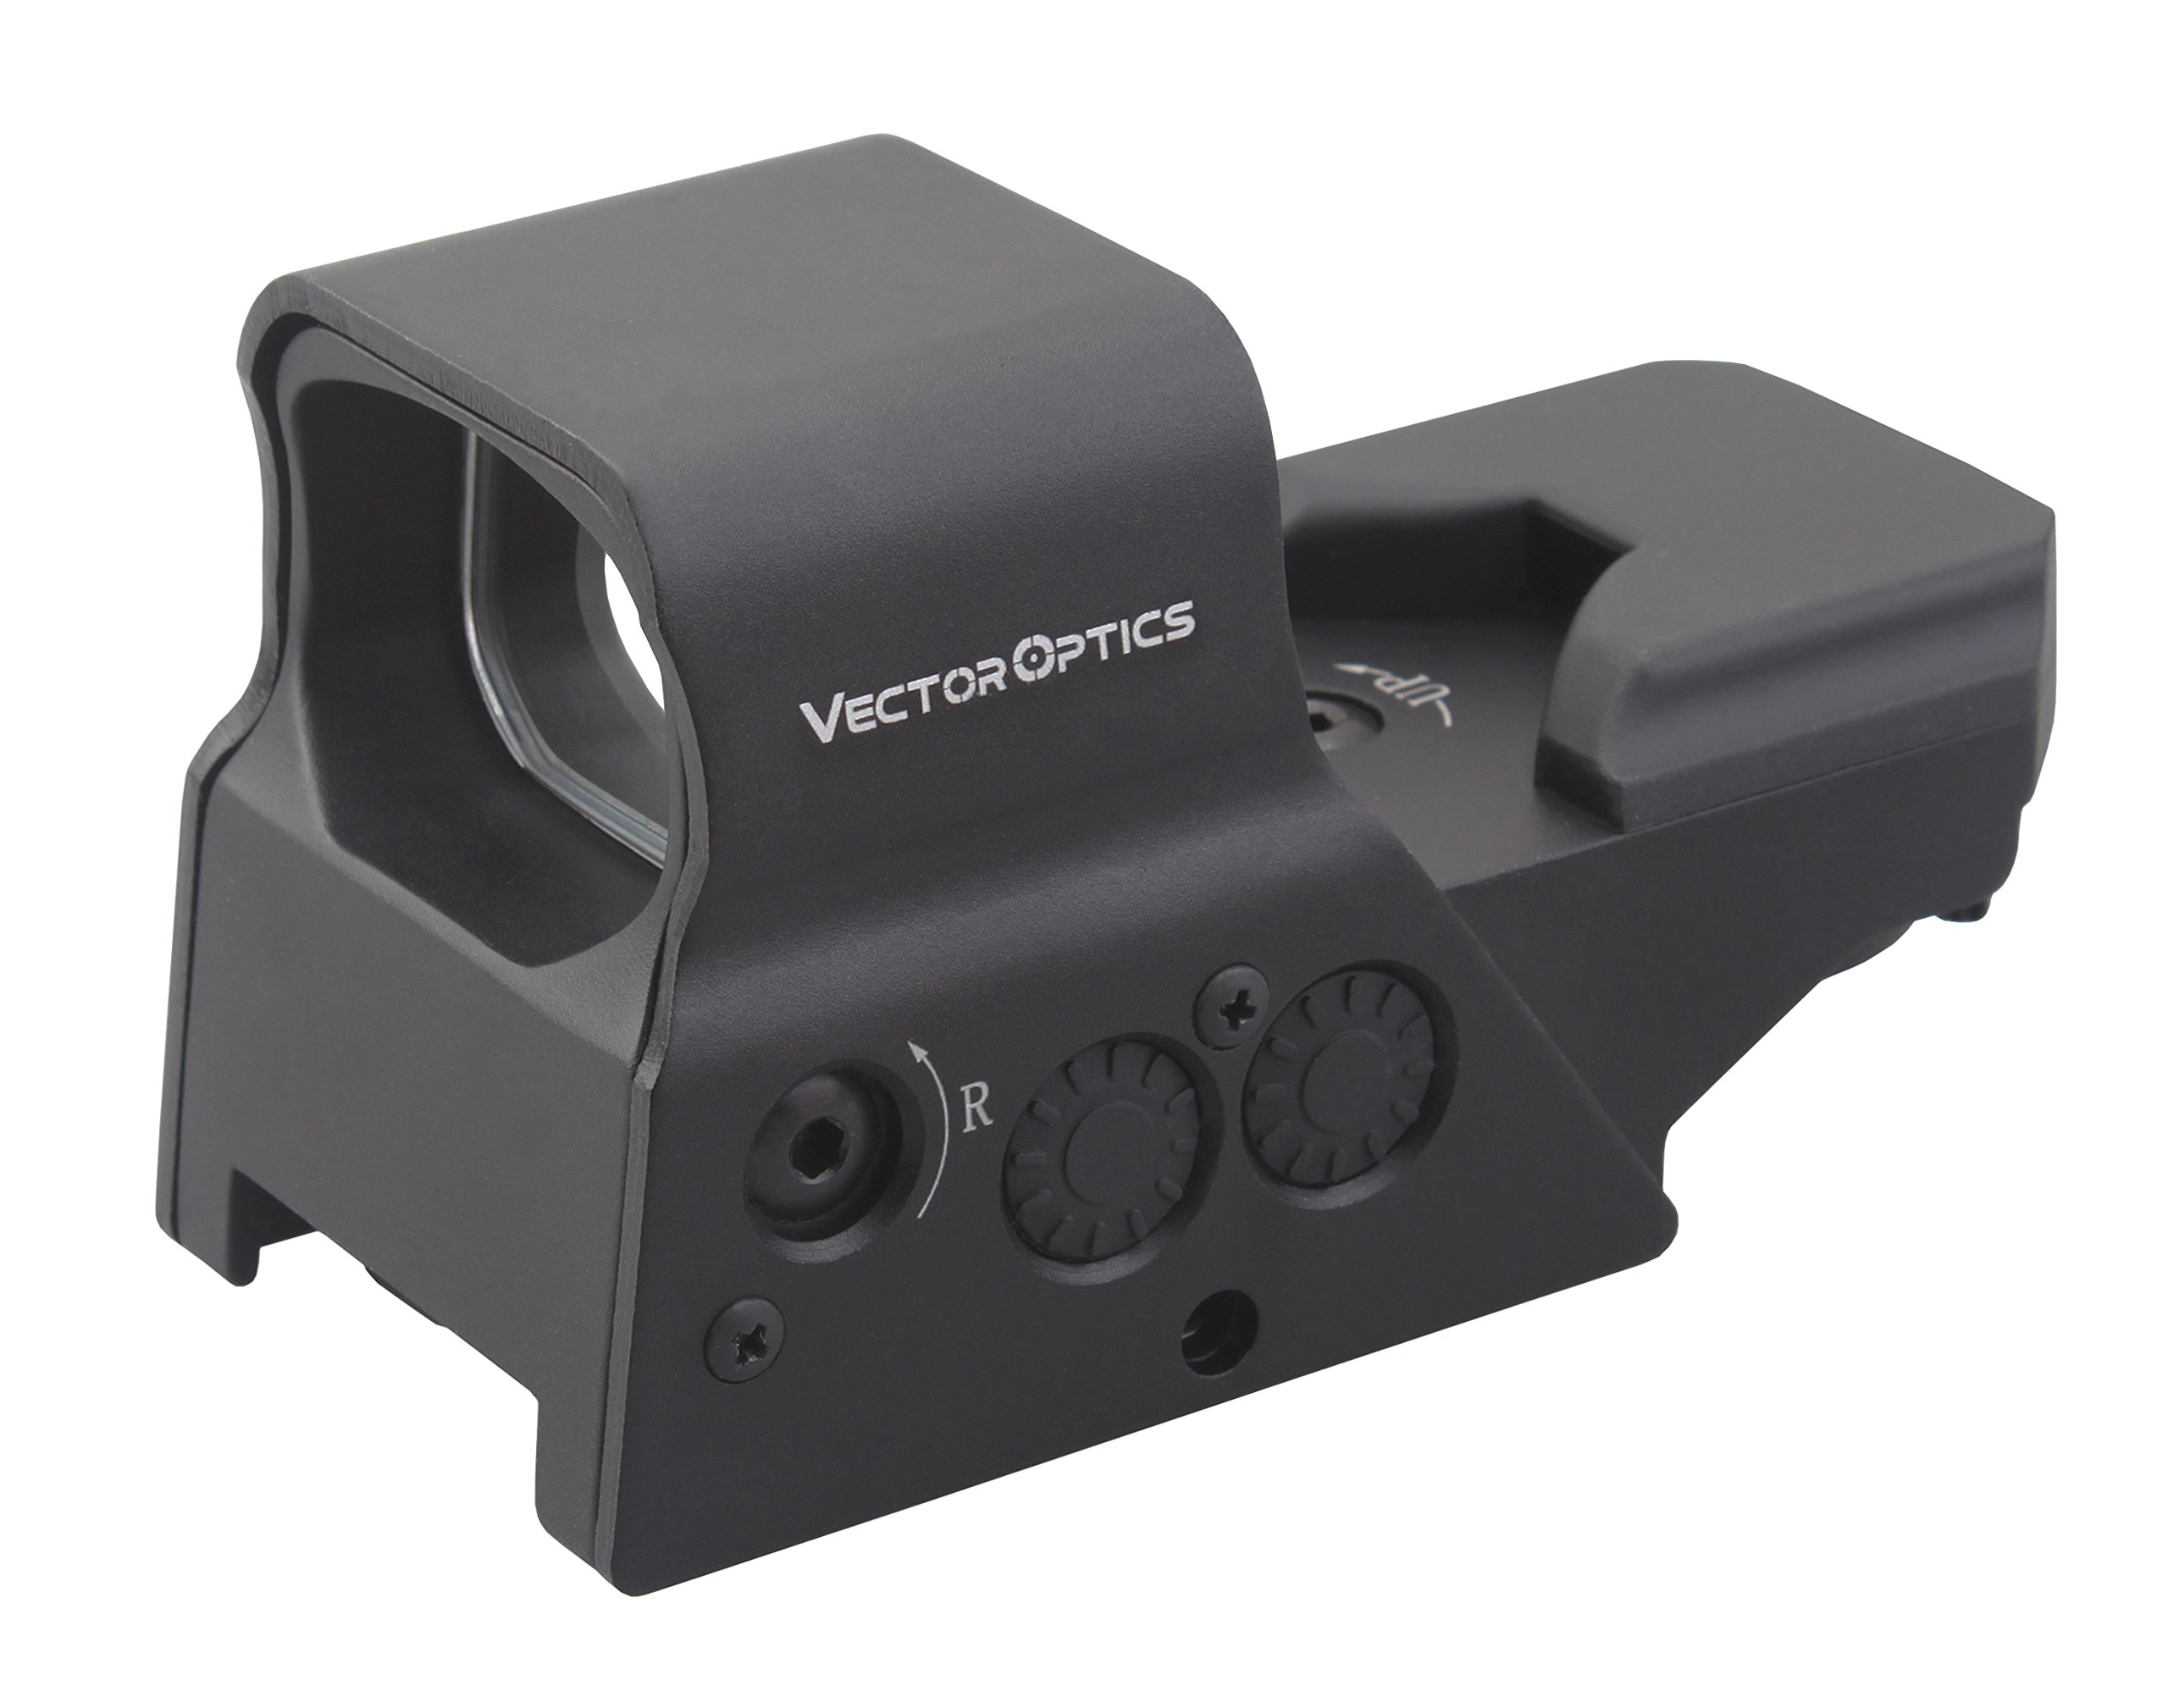 TAC Vector Optics Omega 1x Tactical Reflex 8 Reticle Red Dot Sight Scope US Design in High End Quality fit for AR15 AK74 Color Black